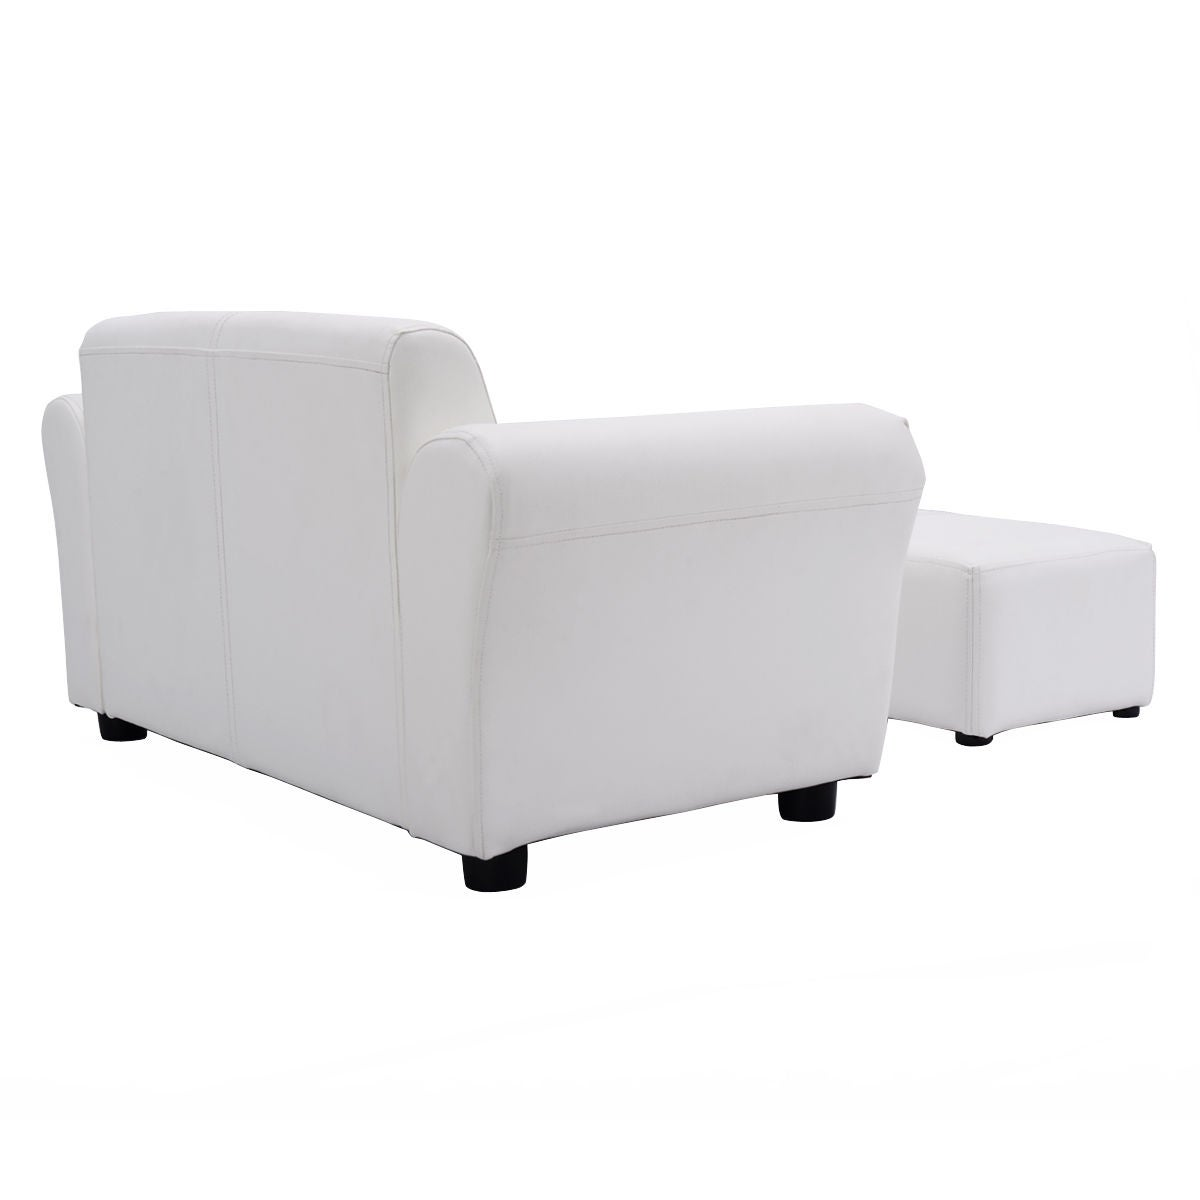 Shop Costway White Kids Sofa Armrest Chair Couch Lounge Children Birthday  Gift W/ Ottoman   Free Shipping Today   Overstock.com   15801782